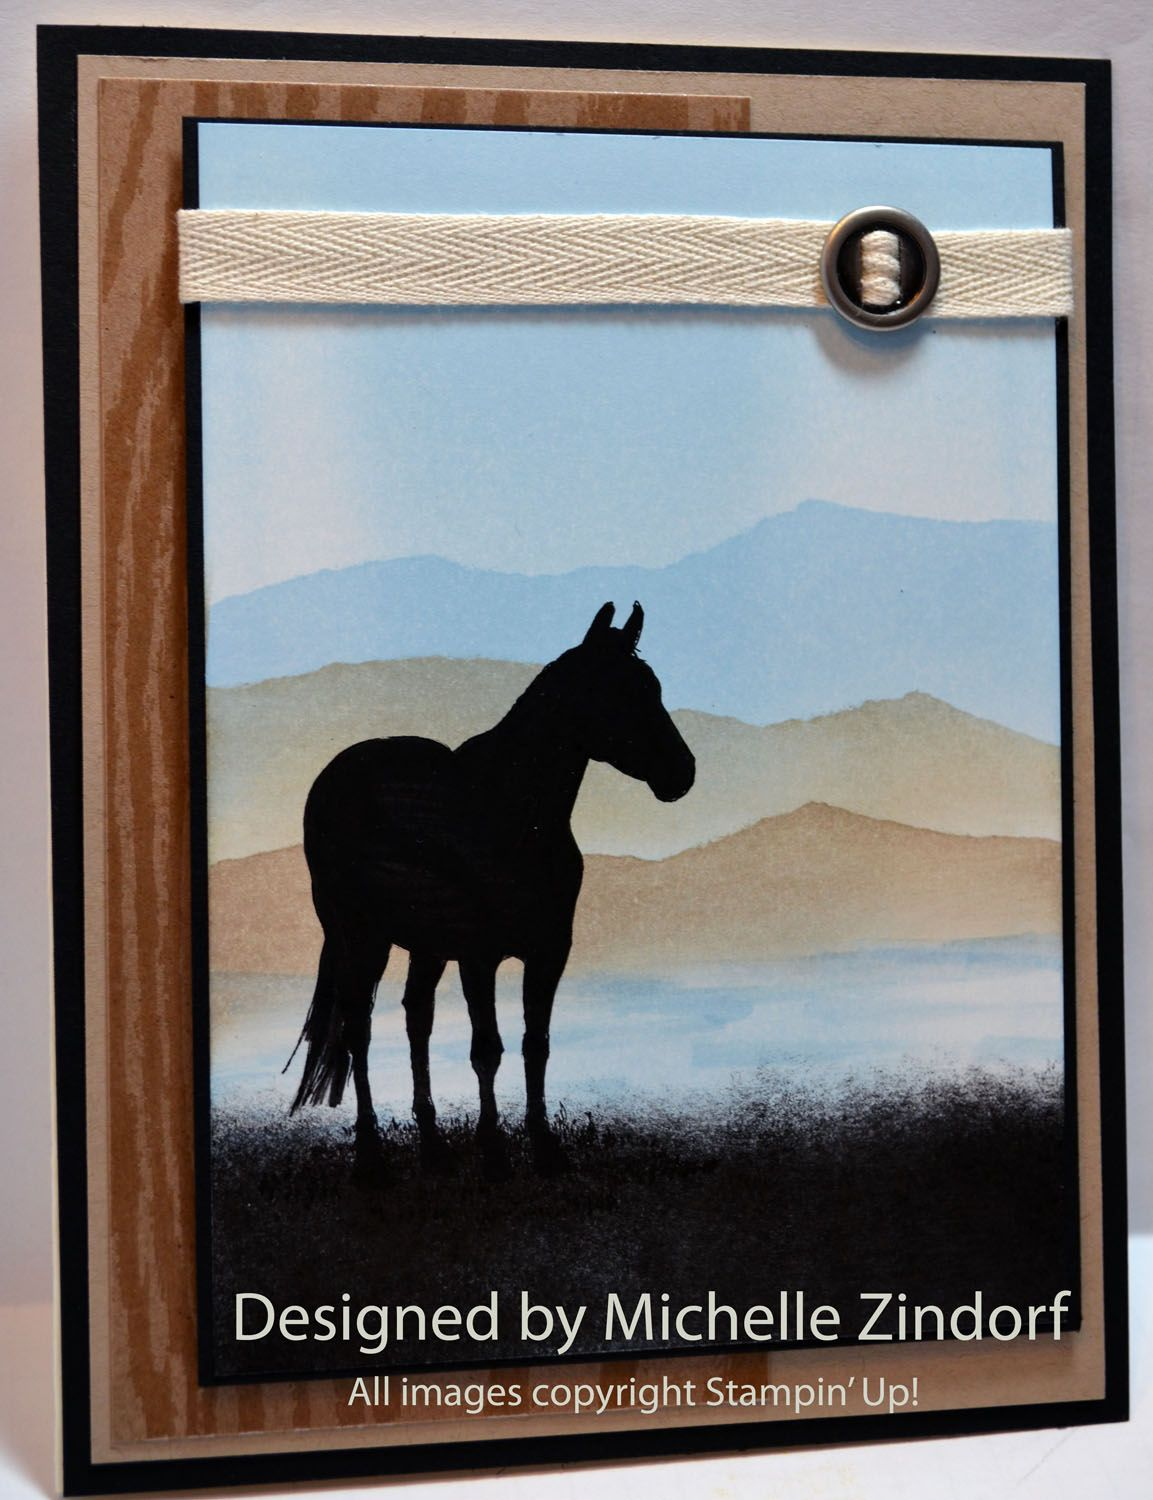 handmade card ... Horse Silhouette scene ... Stampin' Up! Card Tutorial #584 ... luv the sponged background with layers of hills ... Stampin' Up!